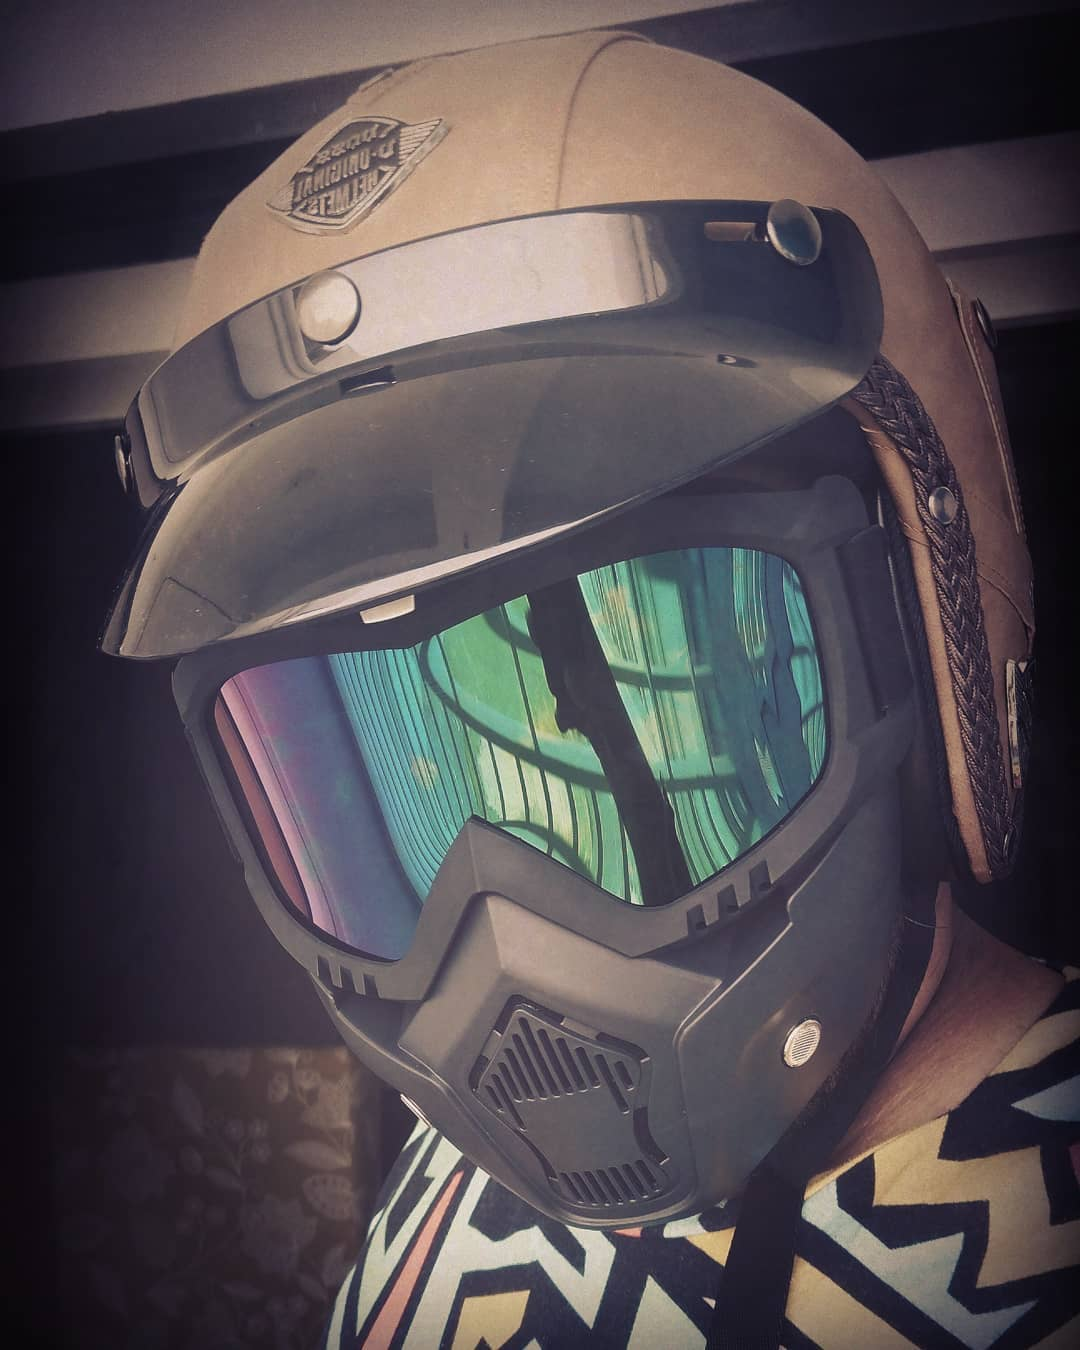 Loving my new Helmet Gear !!! Safety with coolness comes first.  #SastaBhaveshJoshi